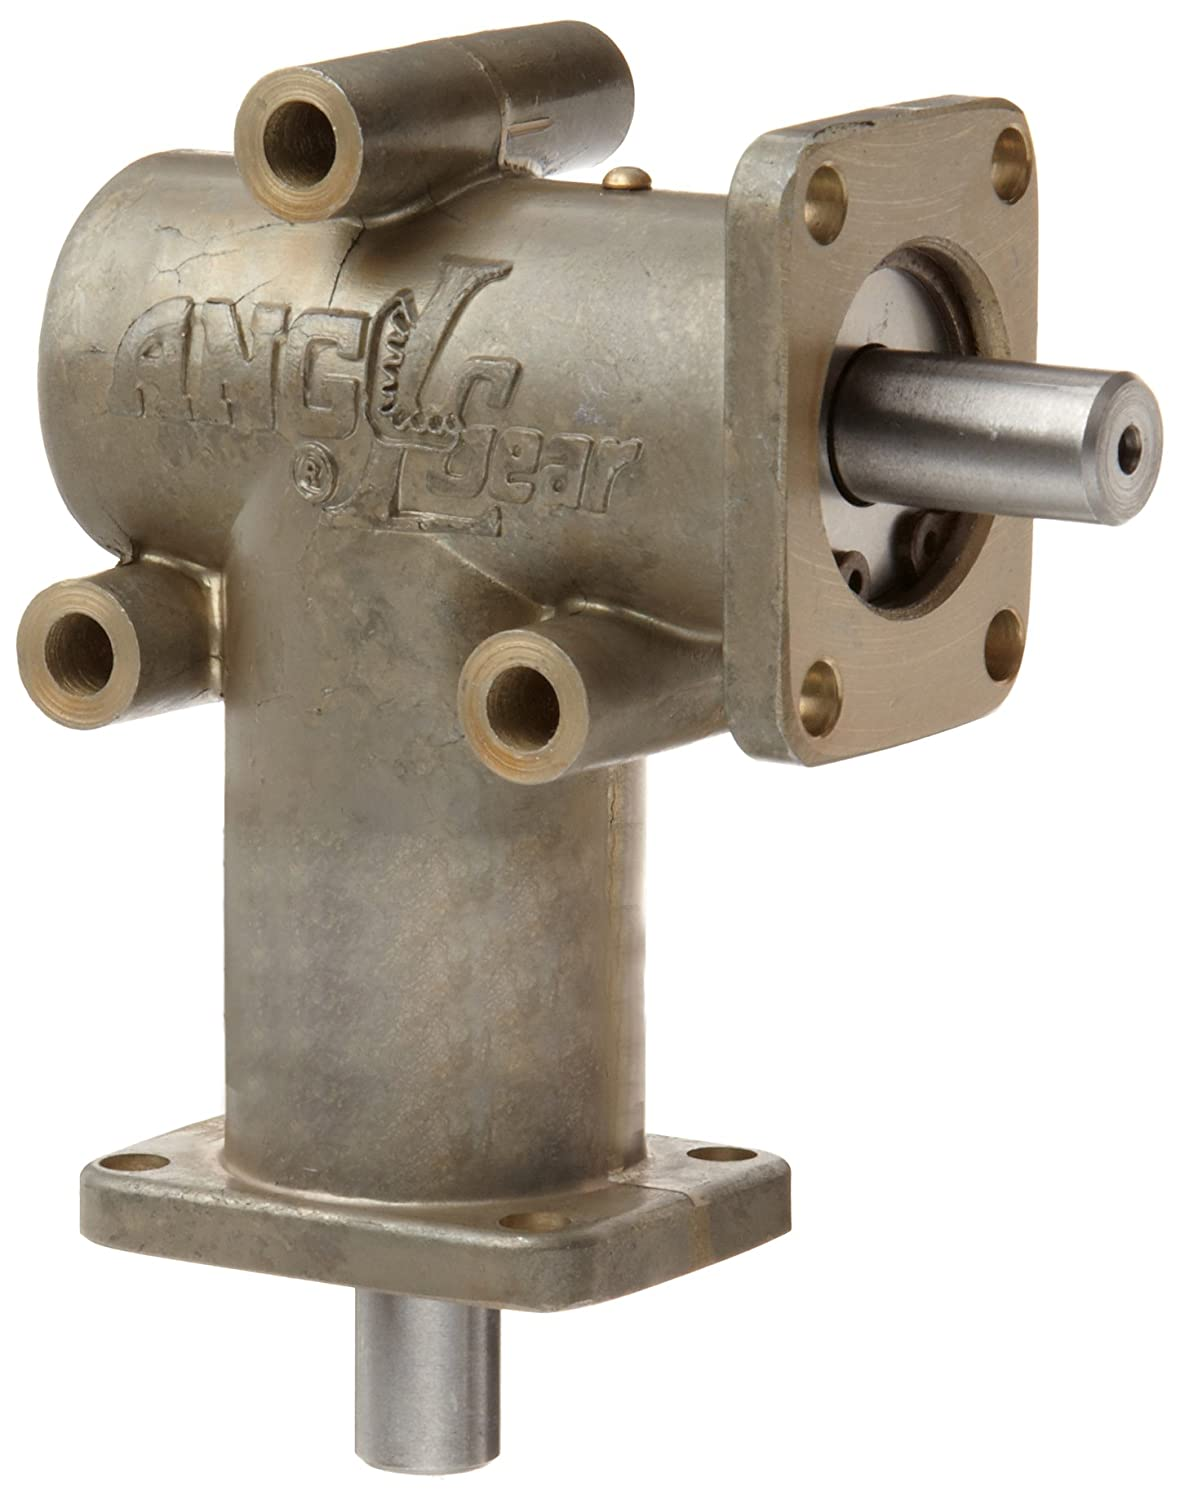 Andantex R3000 Anglgear Right Angle Bevel Gear Drive, Universal Mounting, Single Output Shaft, 2 Flanges, Inch, 3/8' Shaft Diameter, 1:1 Ratio.34 Hp at 1750rpm 3/8 Shaft Diameter 31931